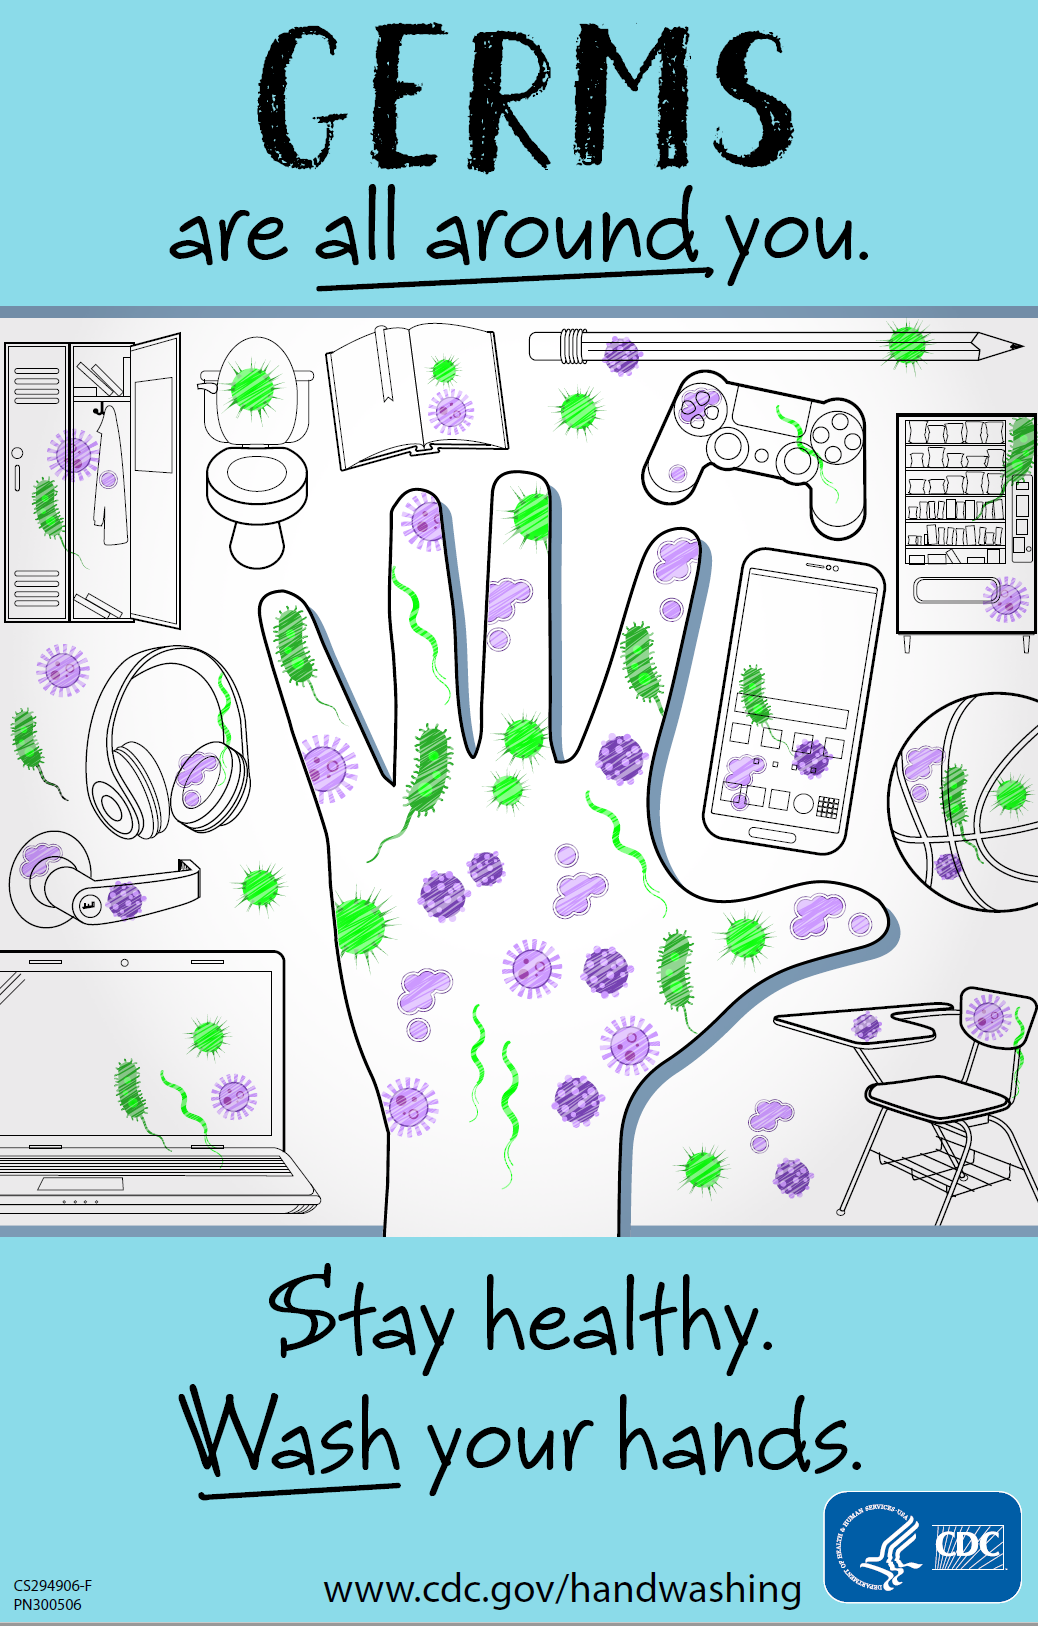 Stay Healthy. Wash Your Hands. Germs are all around you.